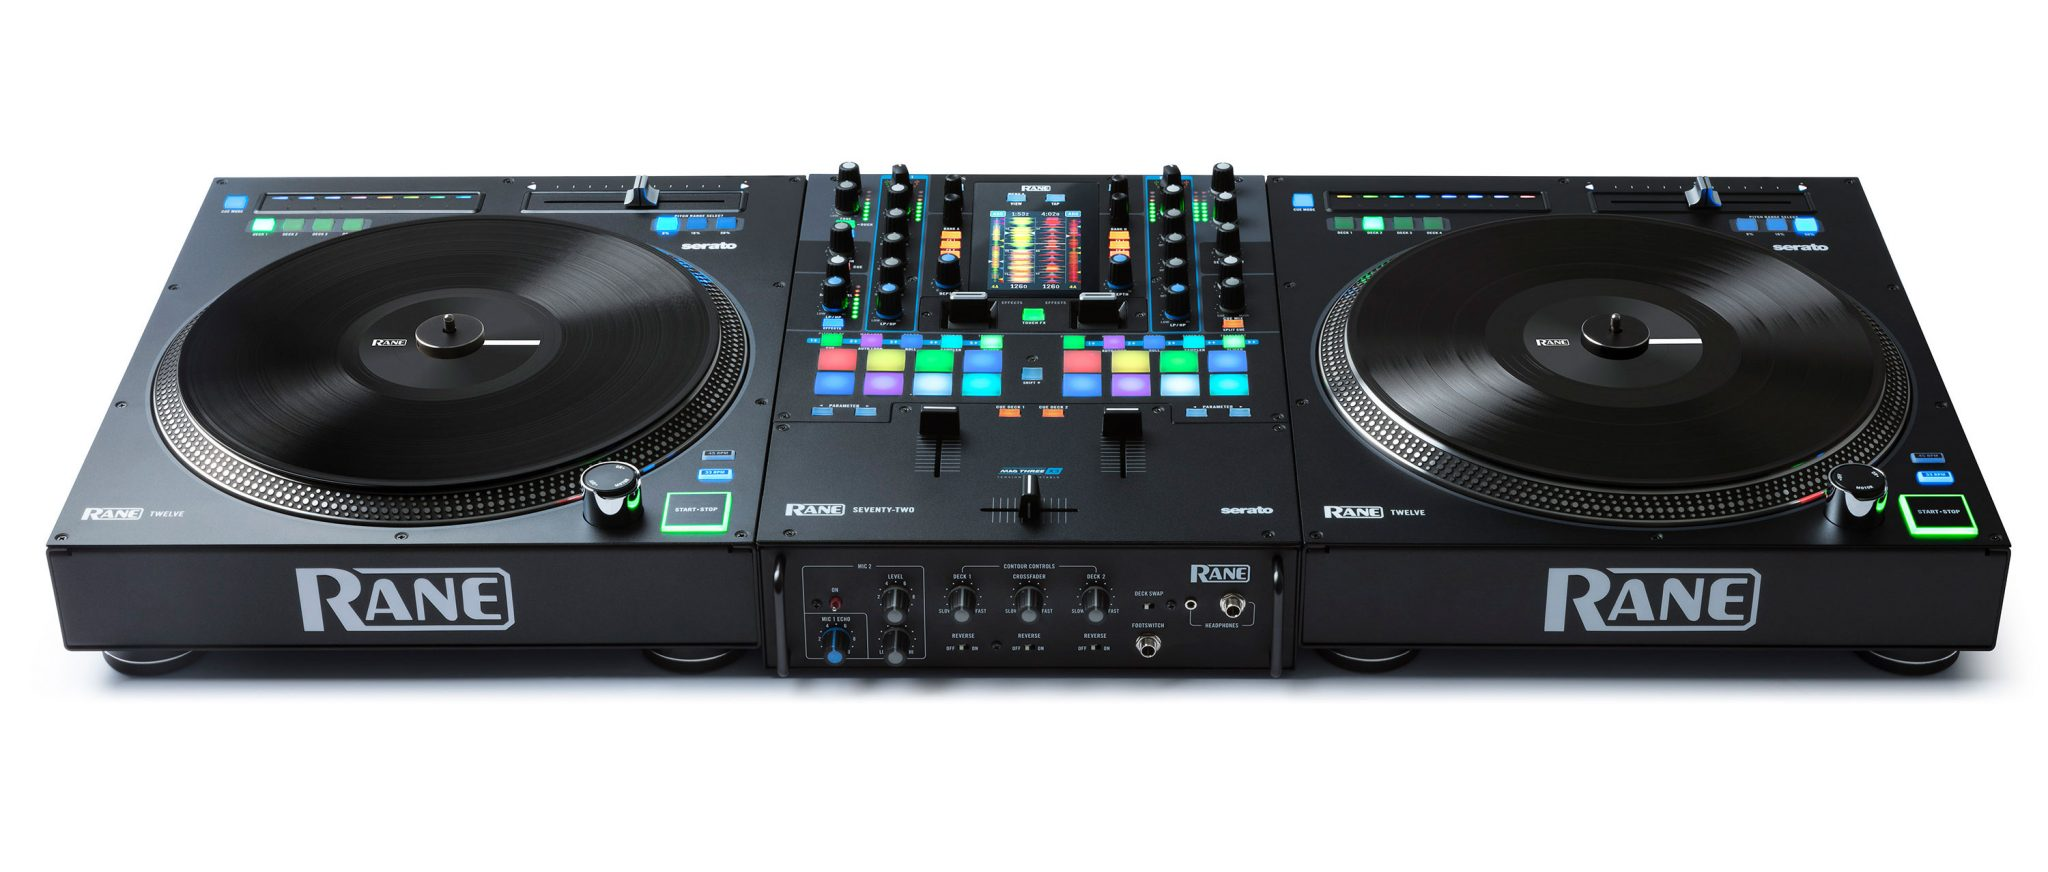 "Rane inmusic Twelve 12"" motorised digital turntable deck controller Serato DJ (7)"